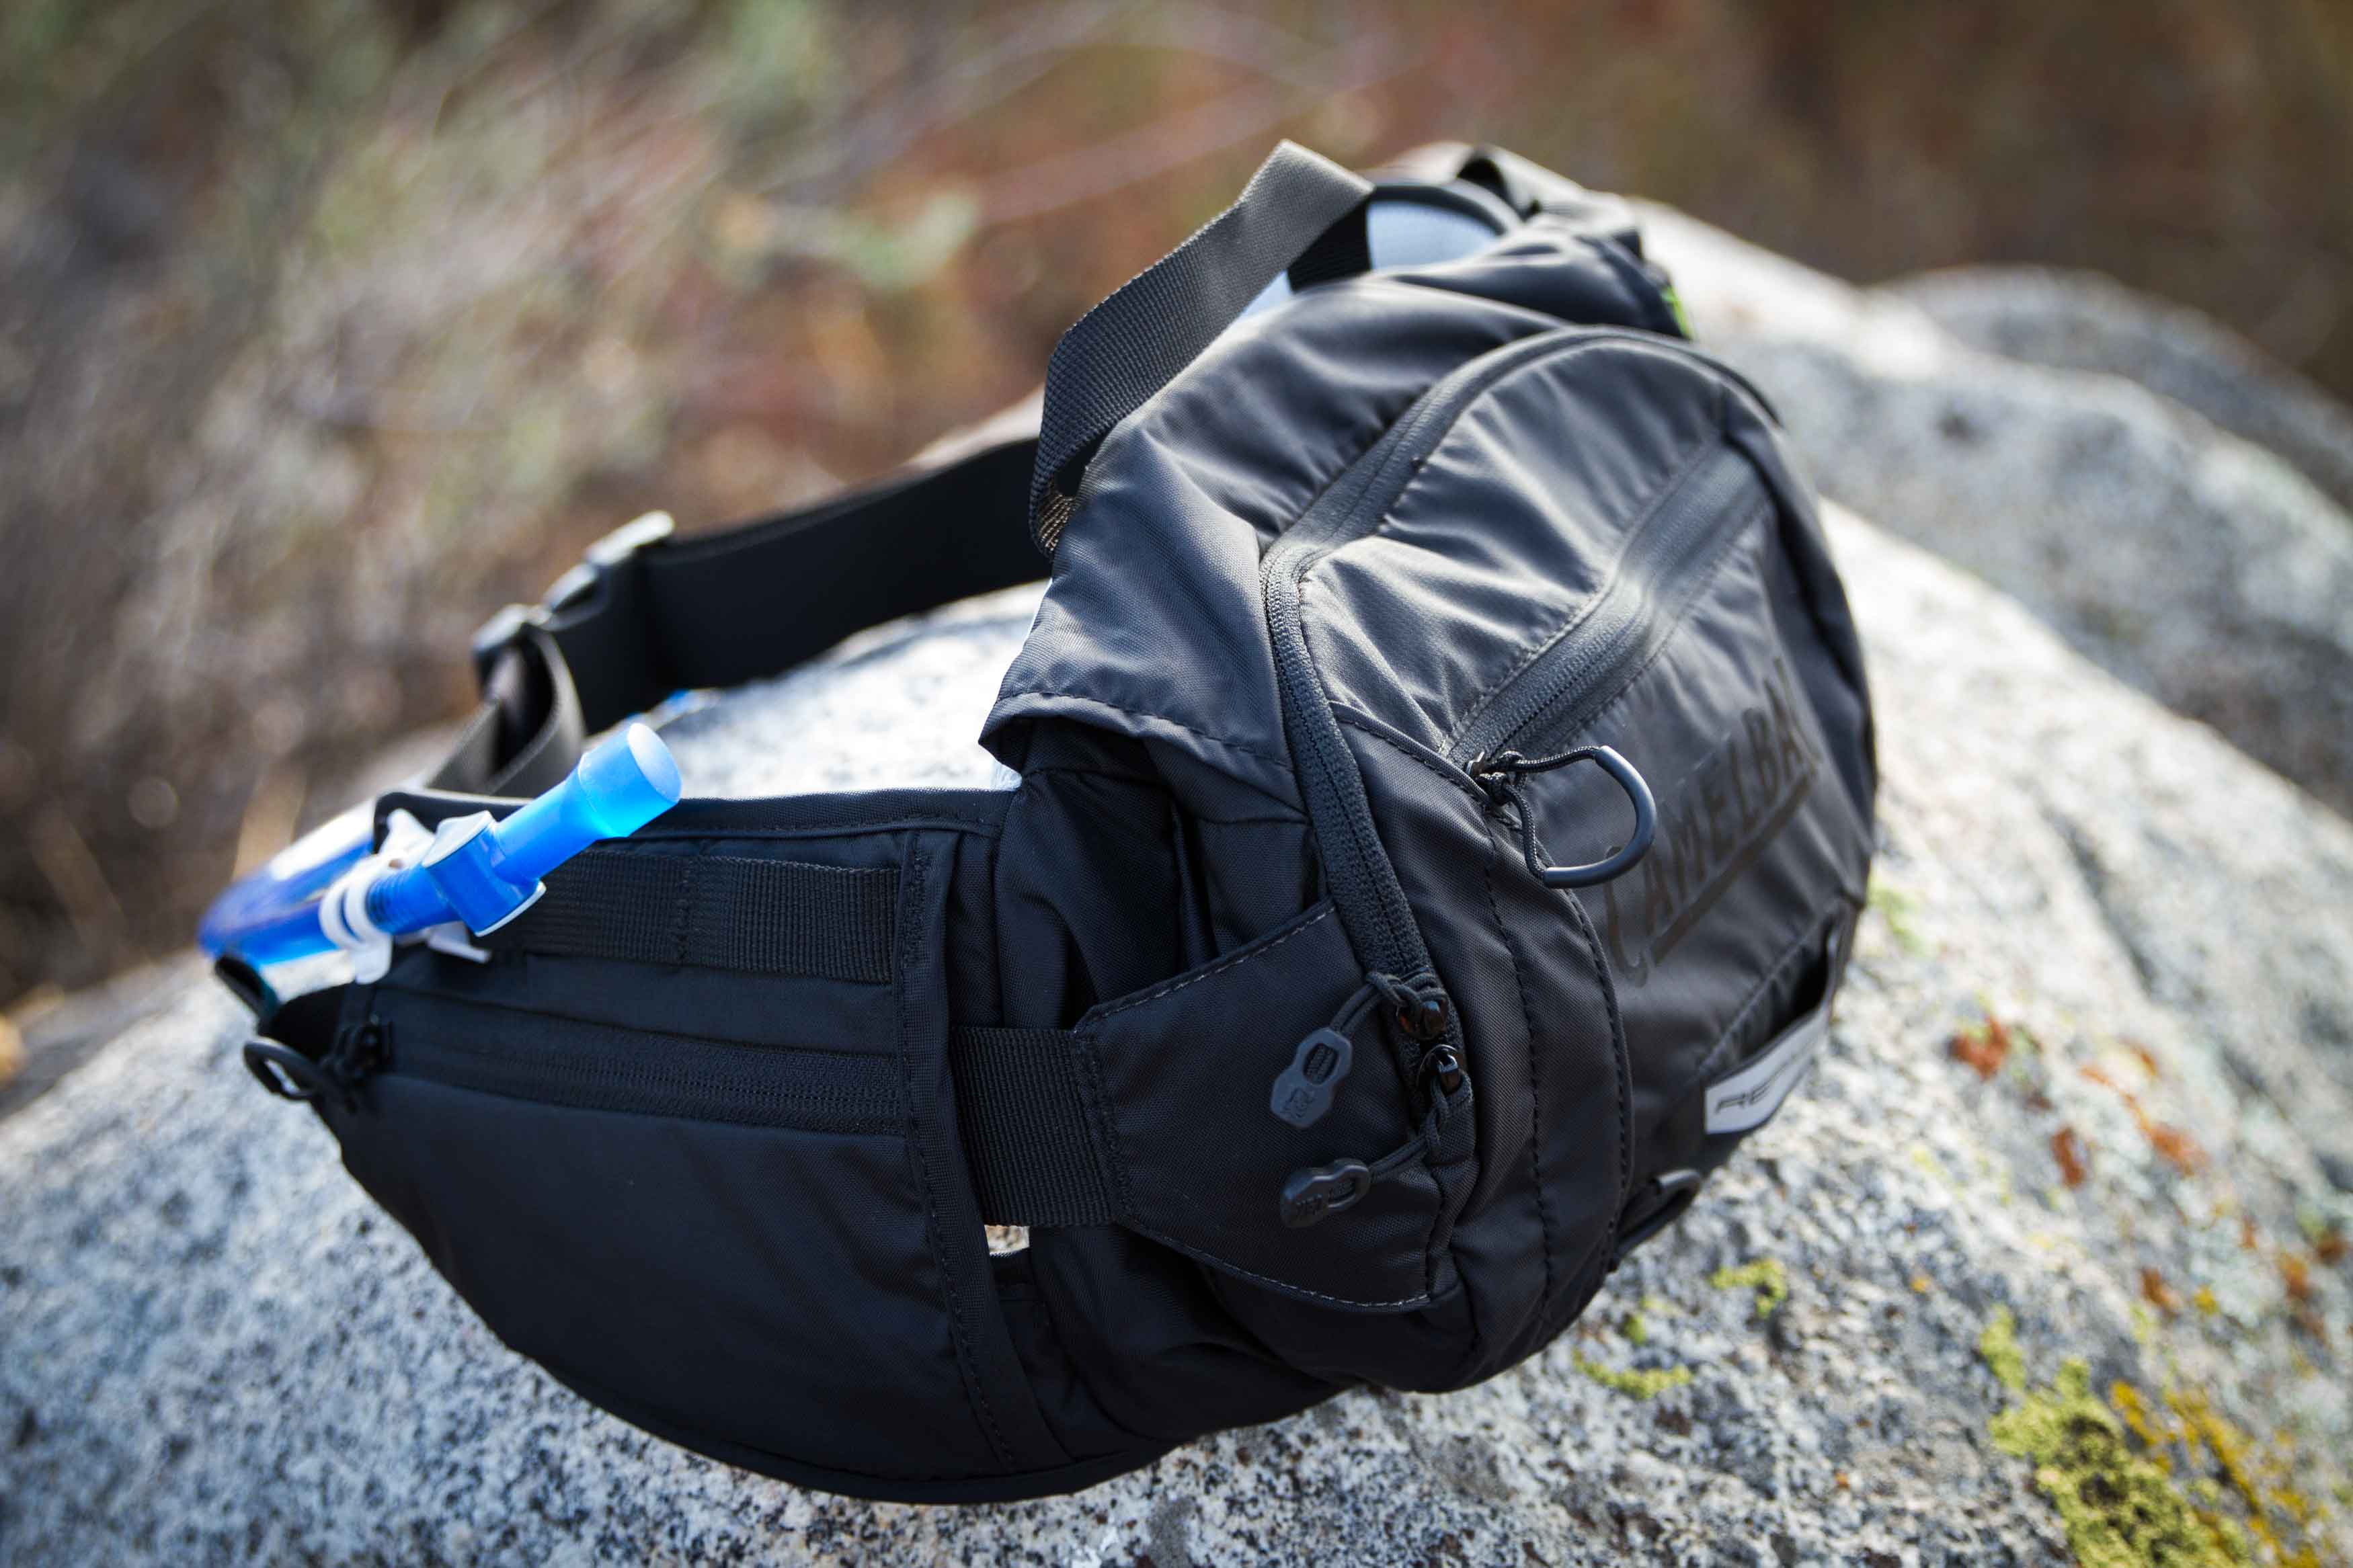 3e1c310f68 Review: CamelBak Repack - The Loam Wolf